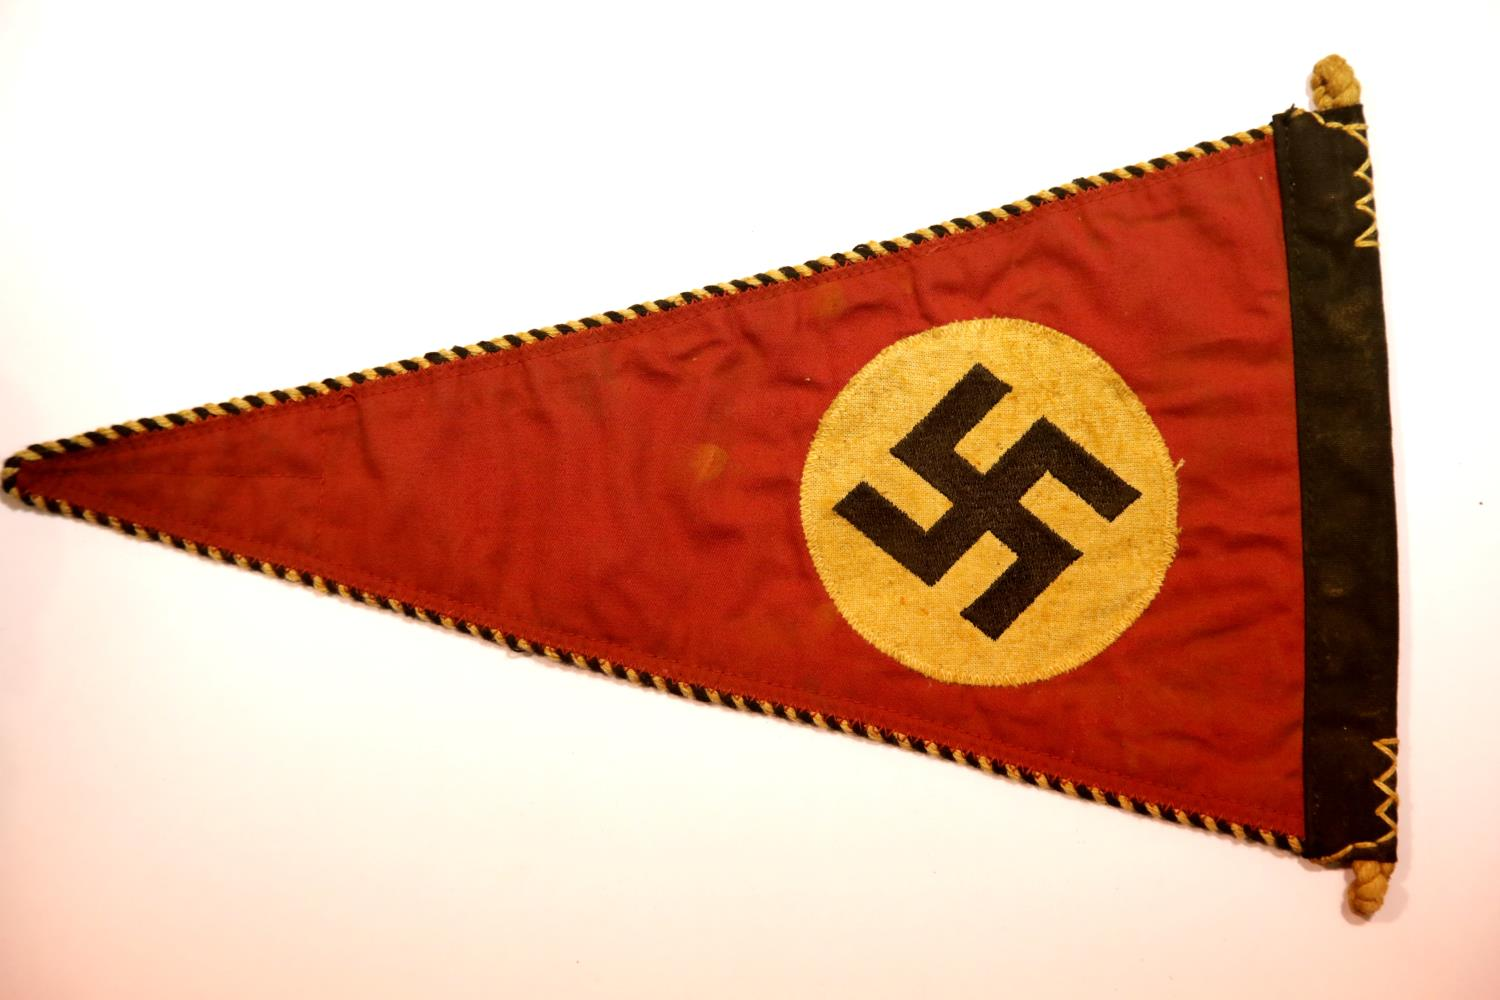 Lot 3018 - German WWII type party pennant, L: 32 cm. P&P Group 1 (£14+VAT for the first lot and £1+VAT for